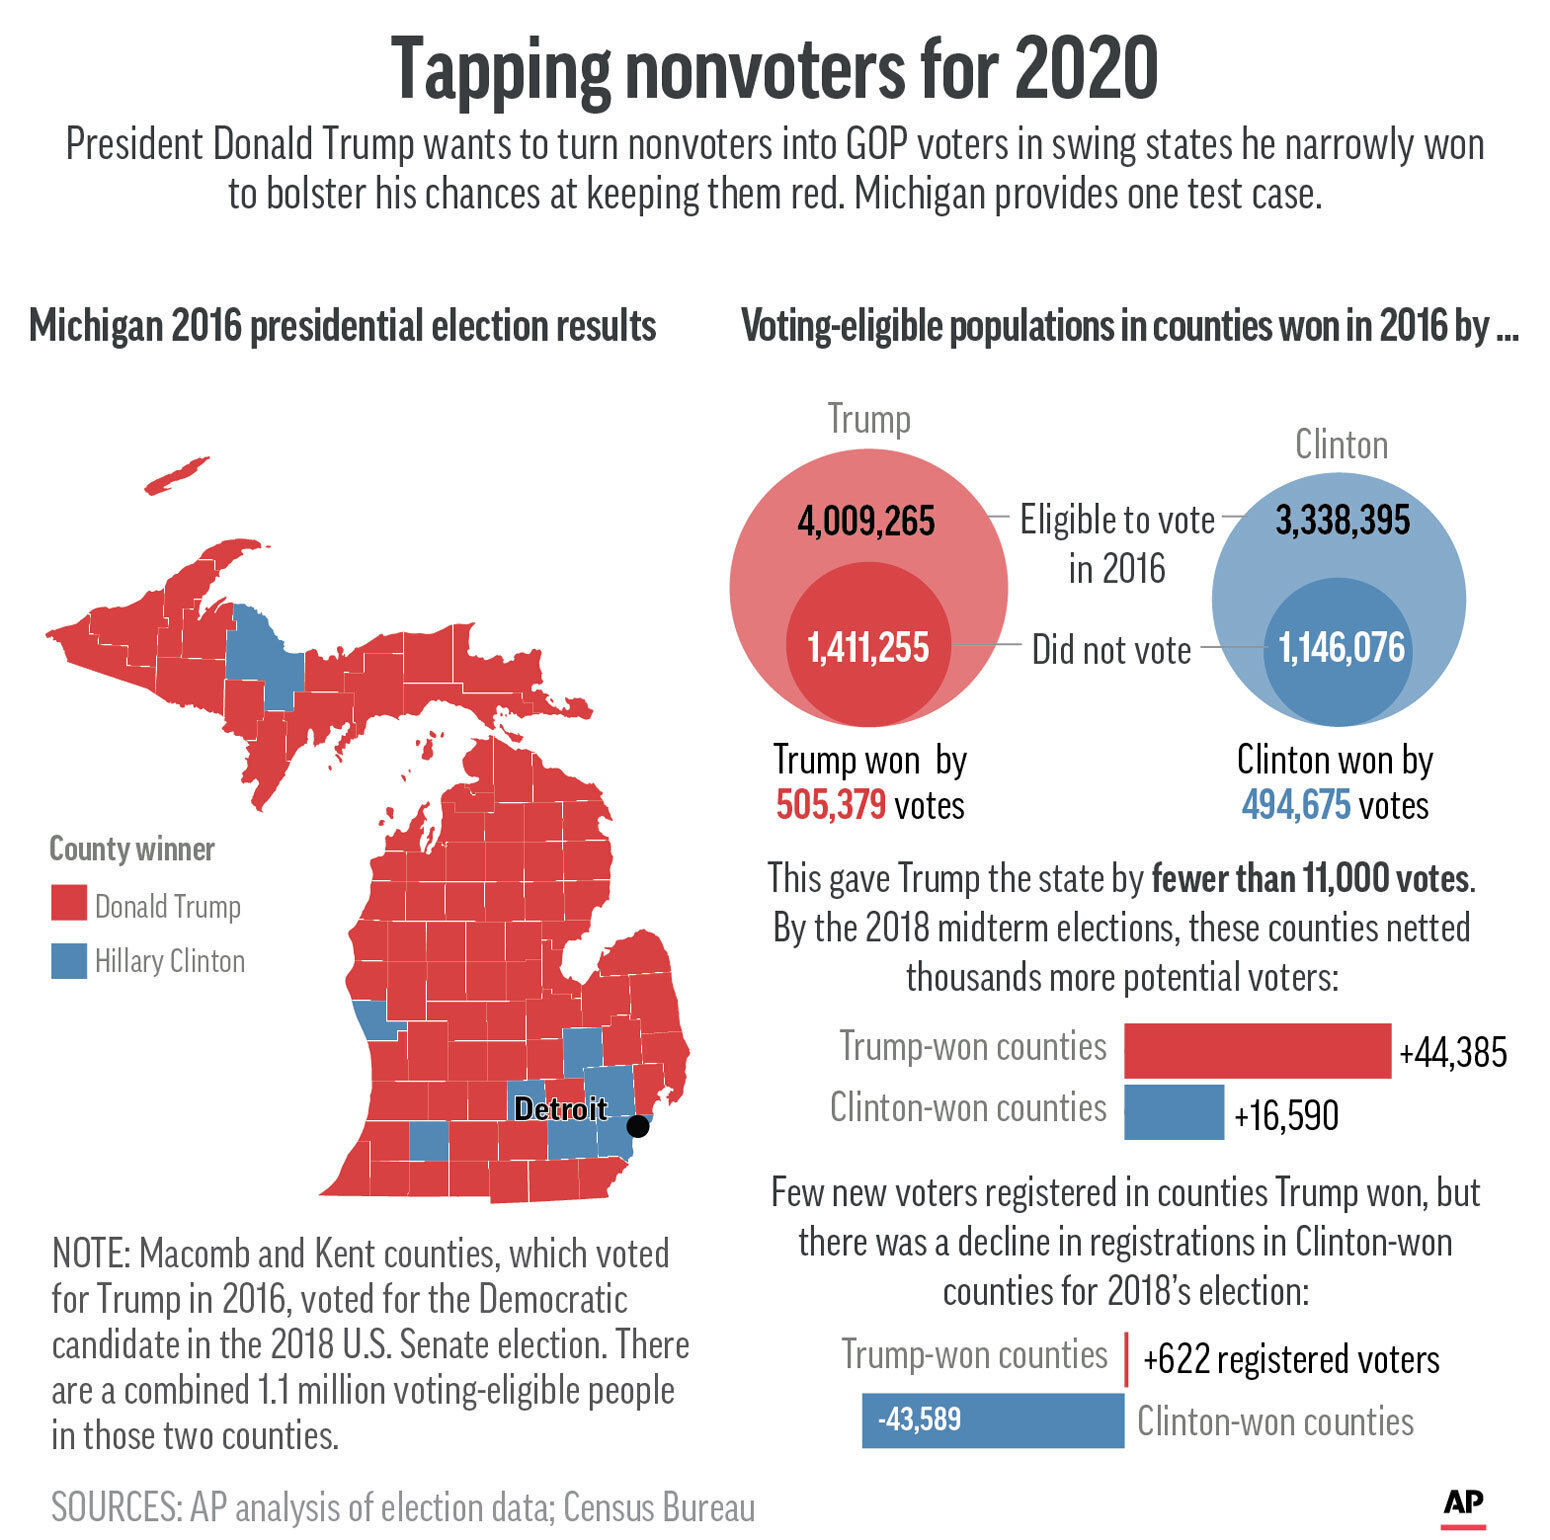 Graphic shows data associated with Michigan voting in the 2016 presidential election (AP)